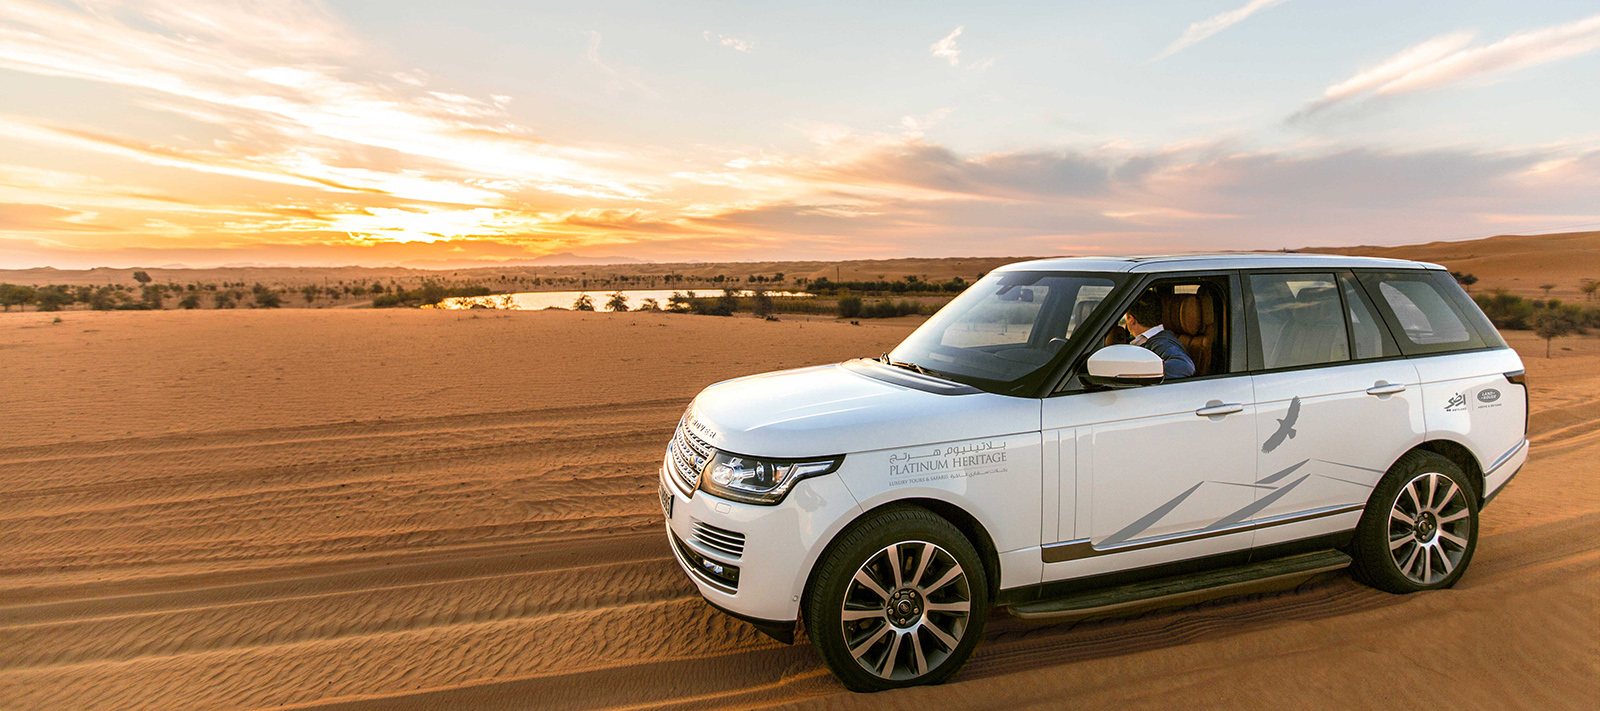 Private Platinum Desert Safari